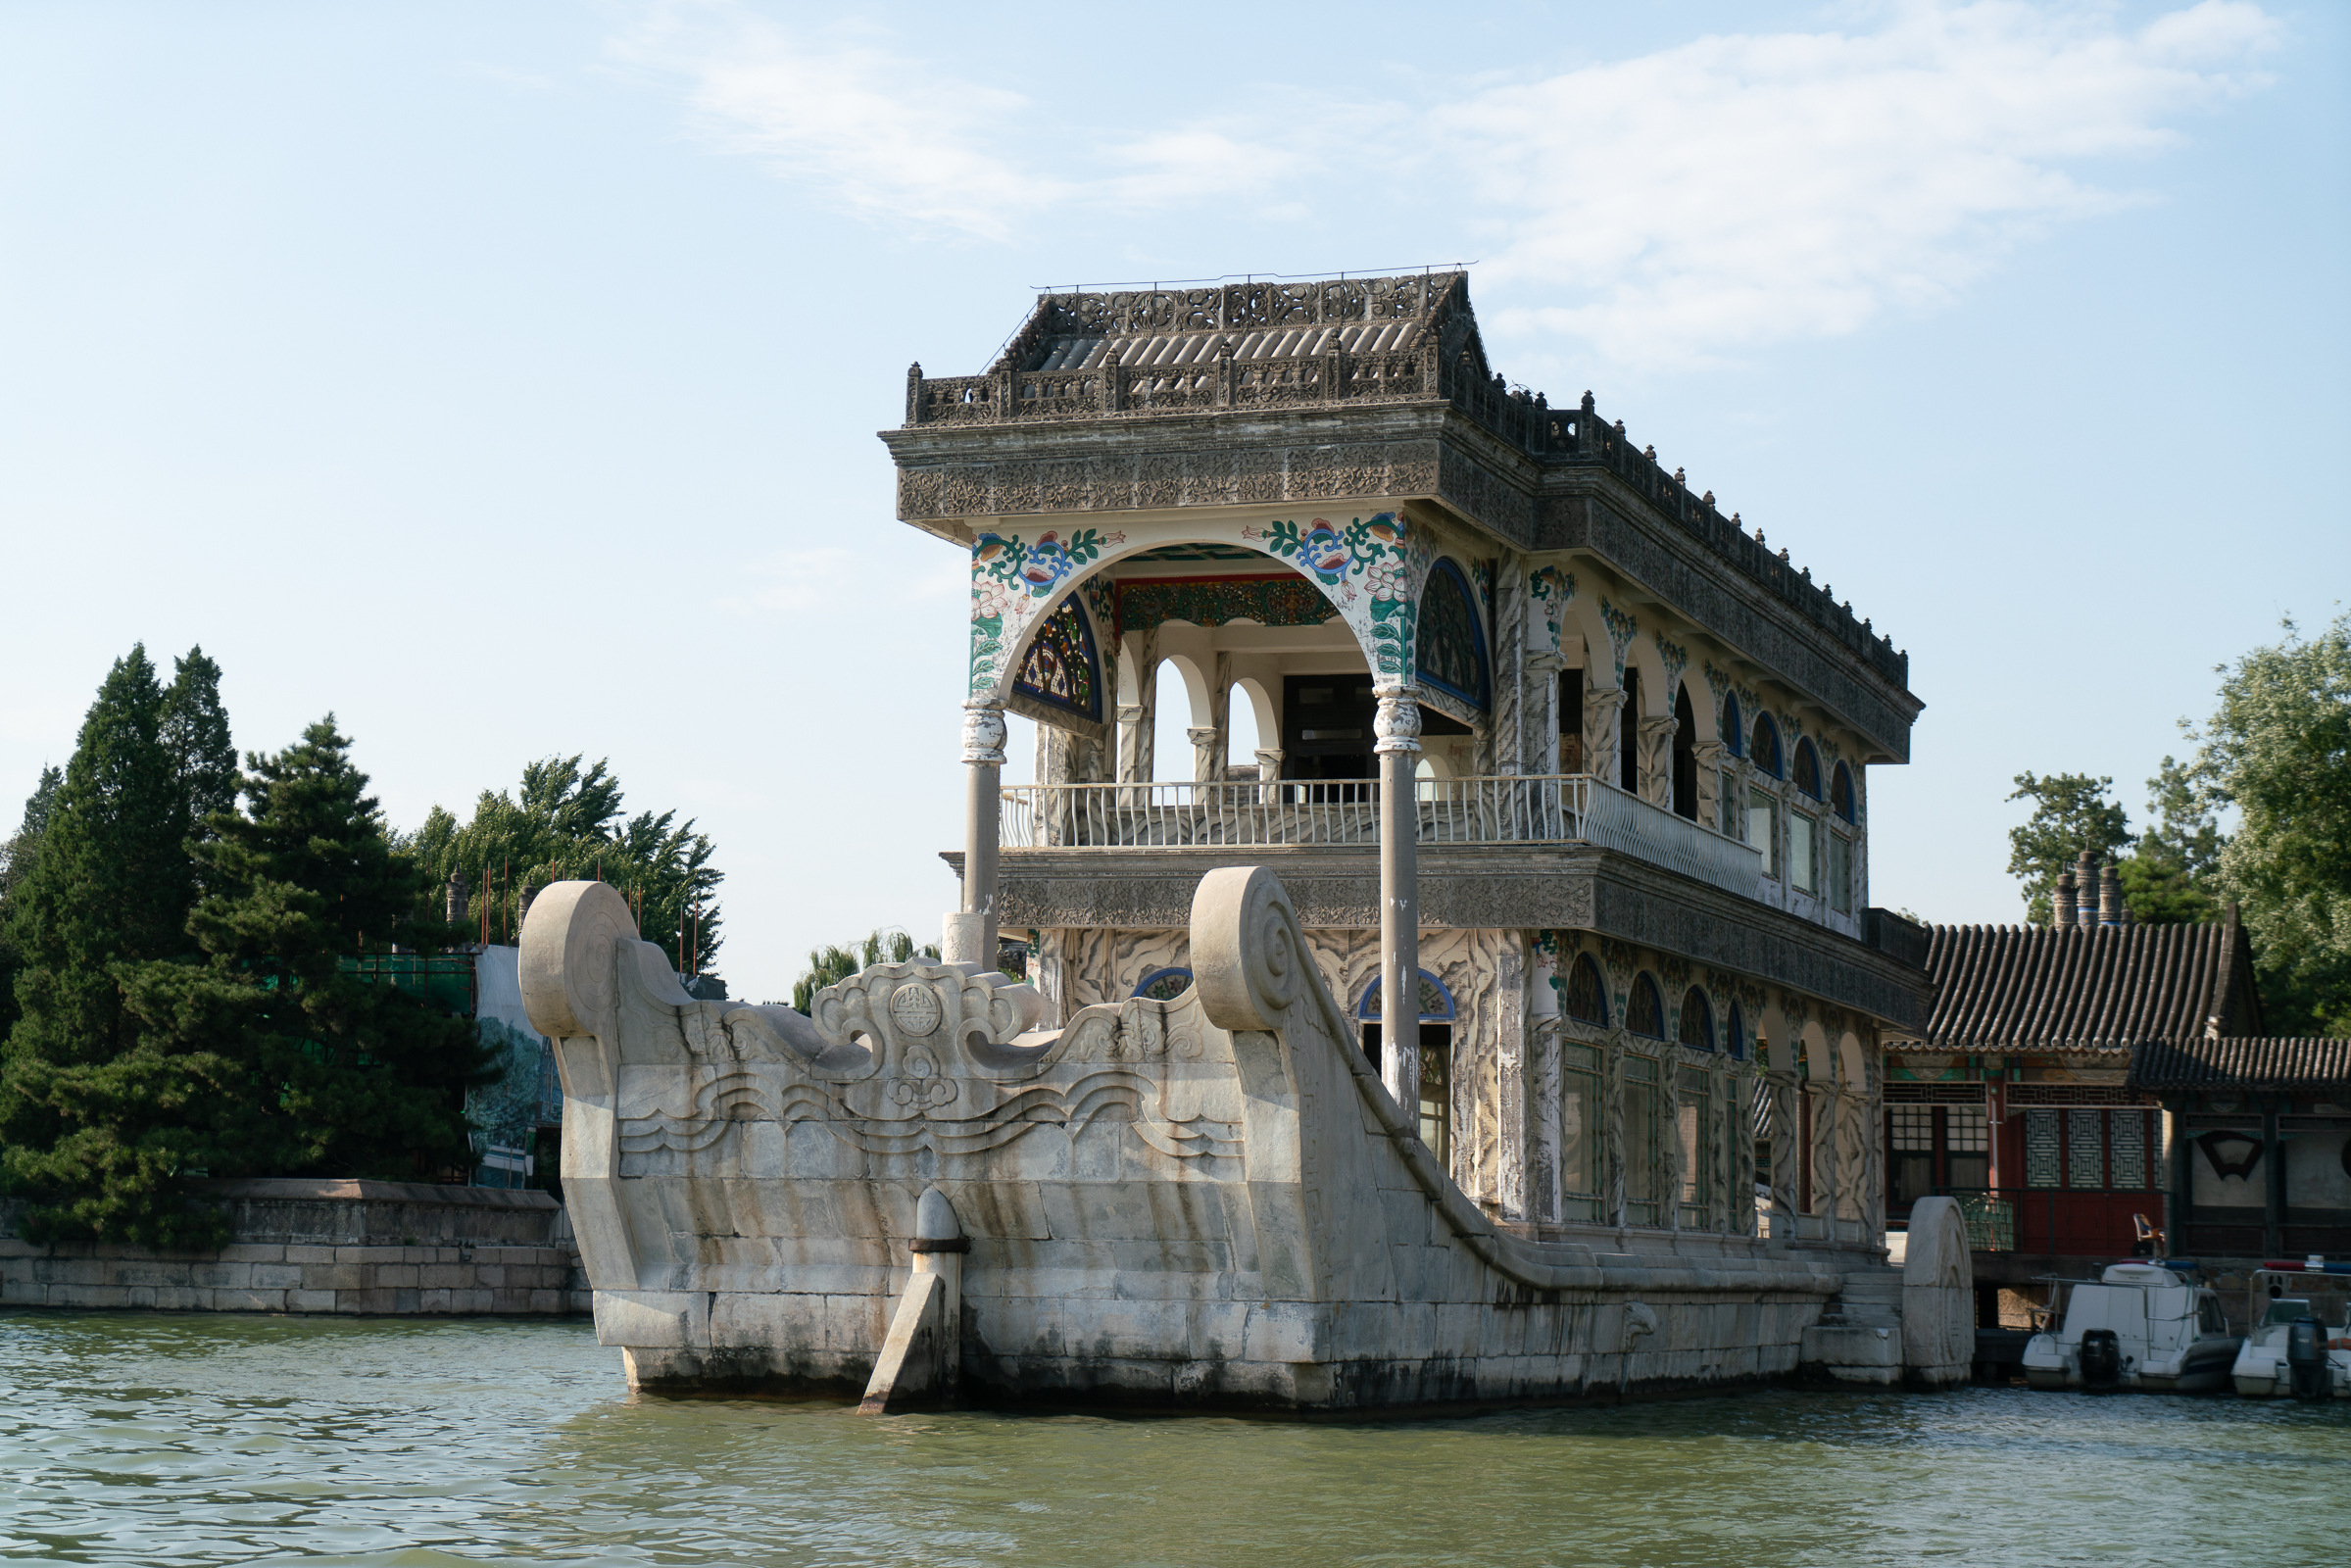 Summer Palace - marble river boat